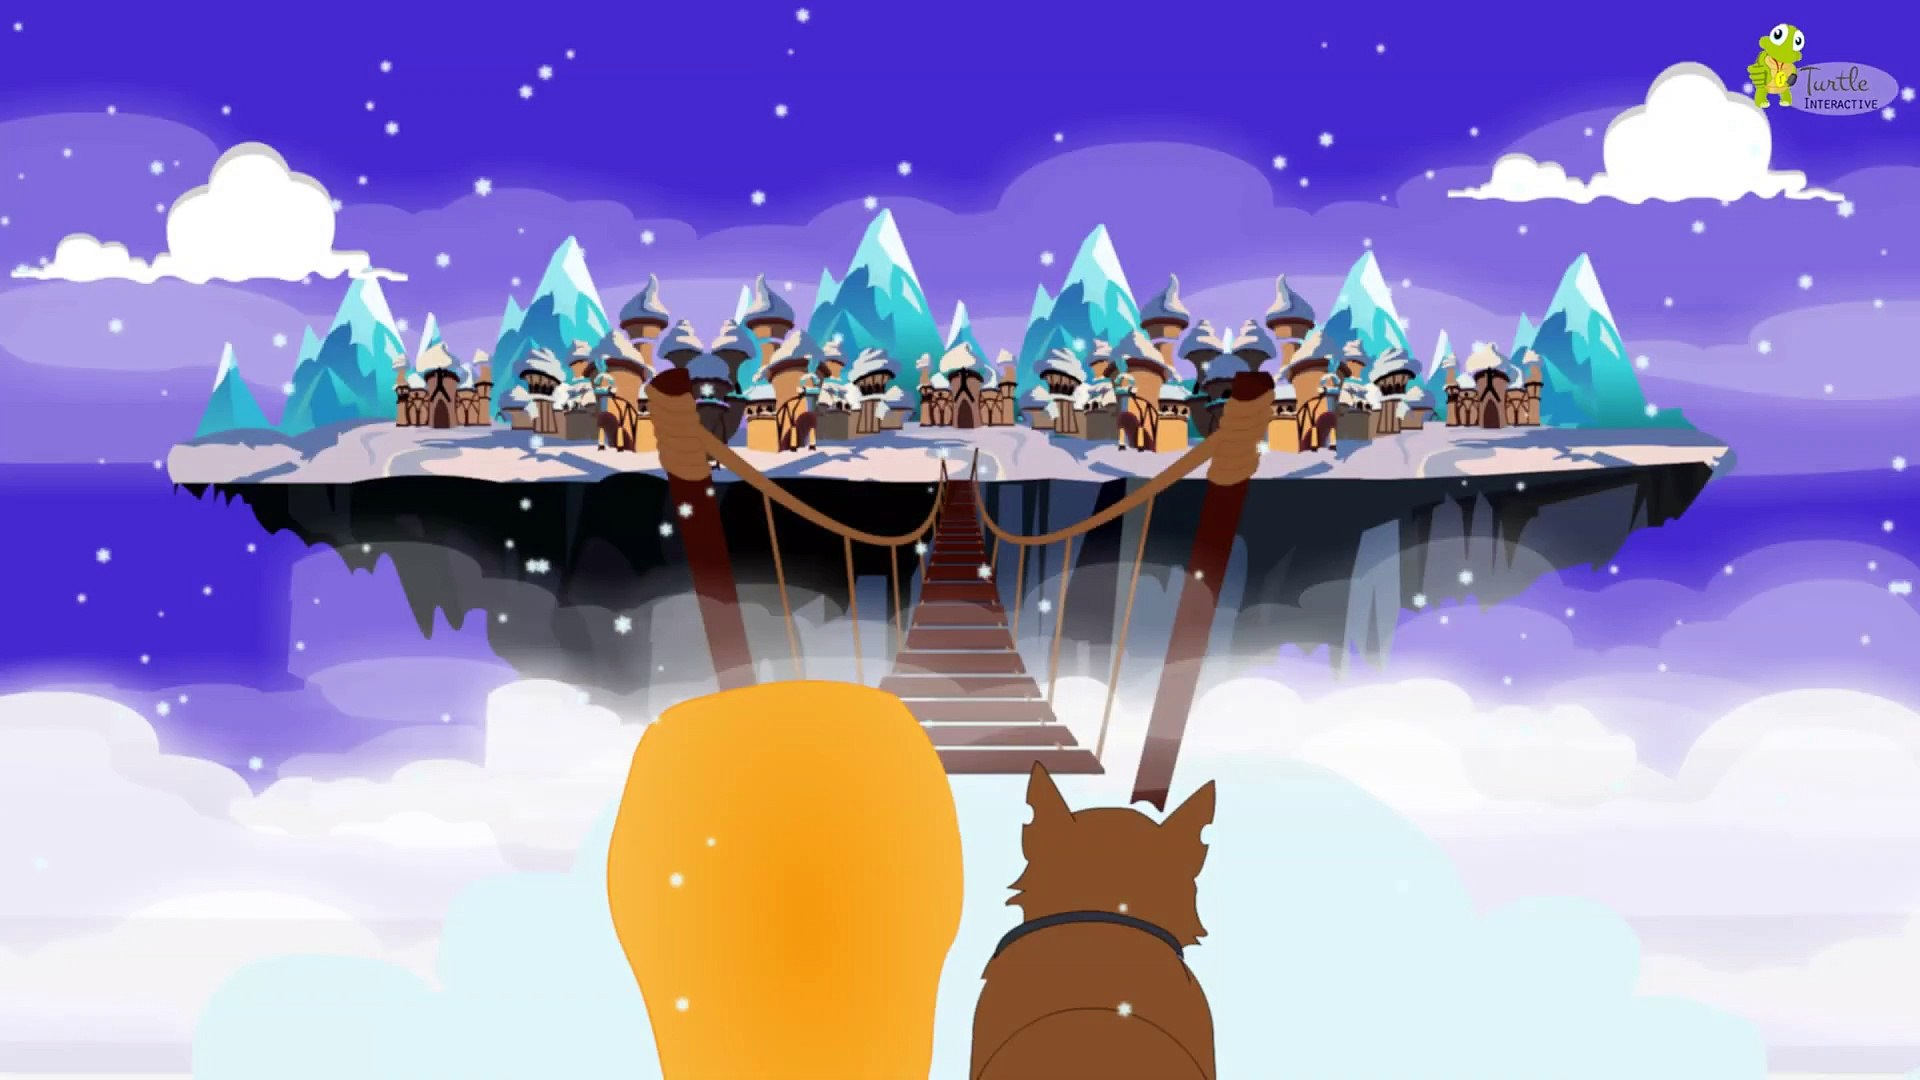 Pluto Song - Nursery Rhymes and Song for Kids - Education Park